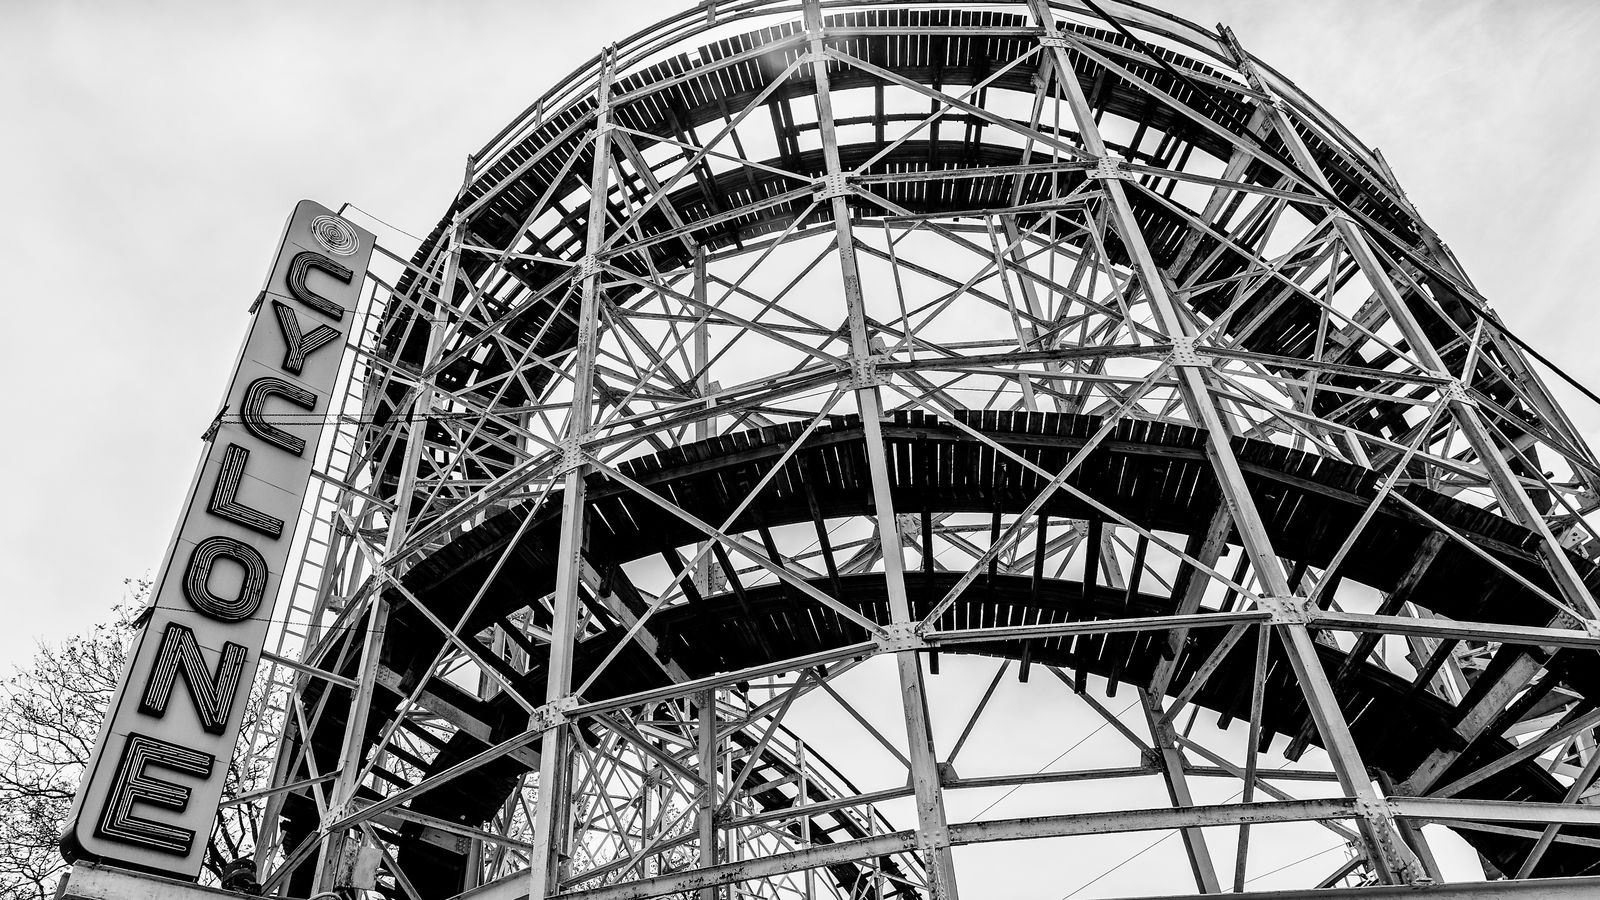 Coney Island S Iconic Cyclone Roller Coaster Celebrates Its 90th Birthday